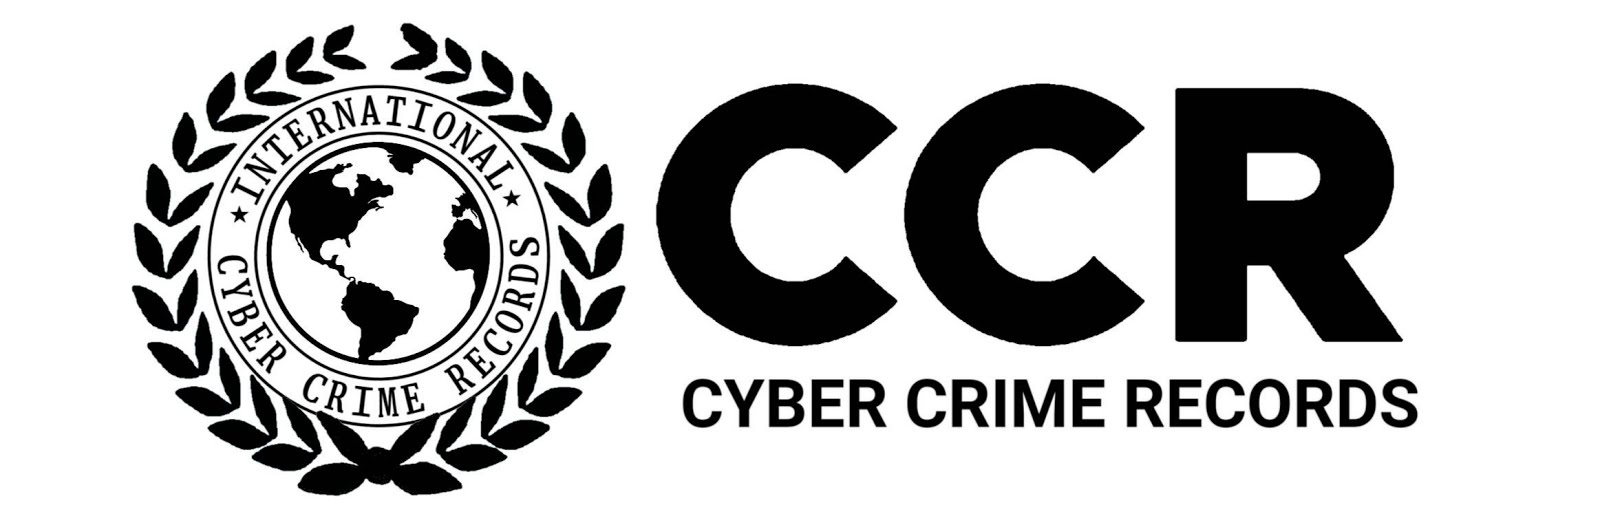 CYBER CRIME RECORDS